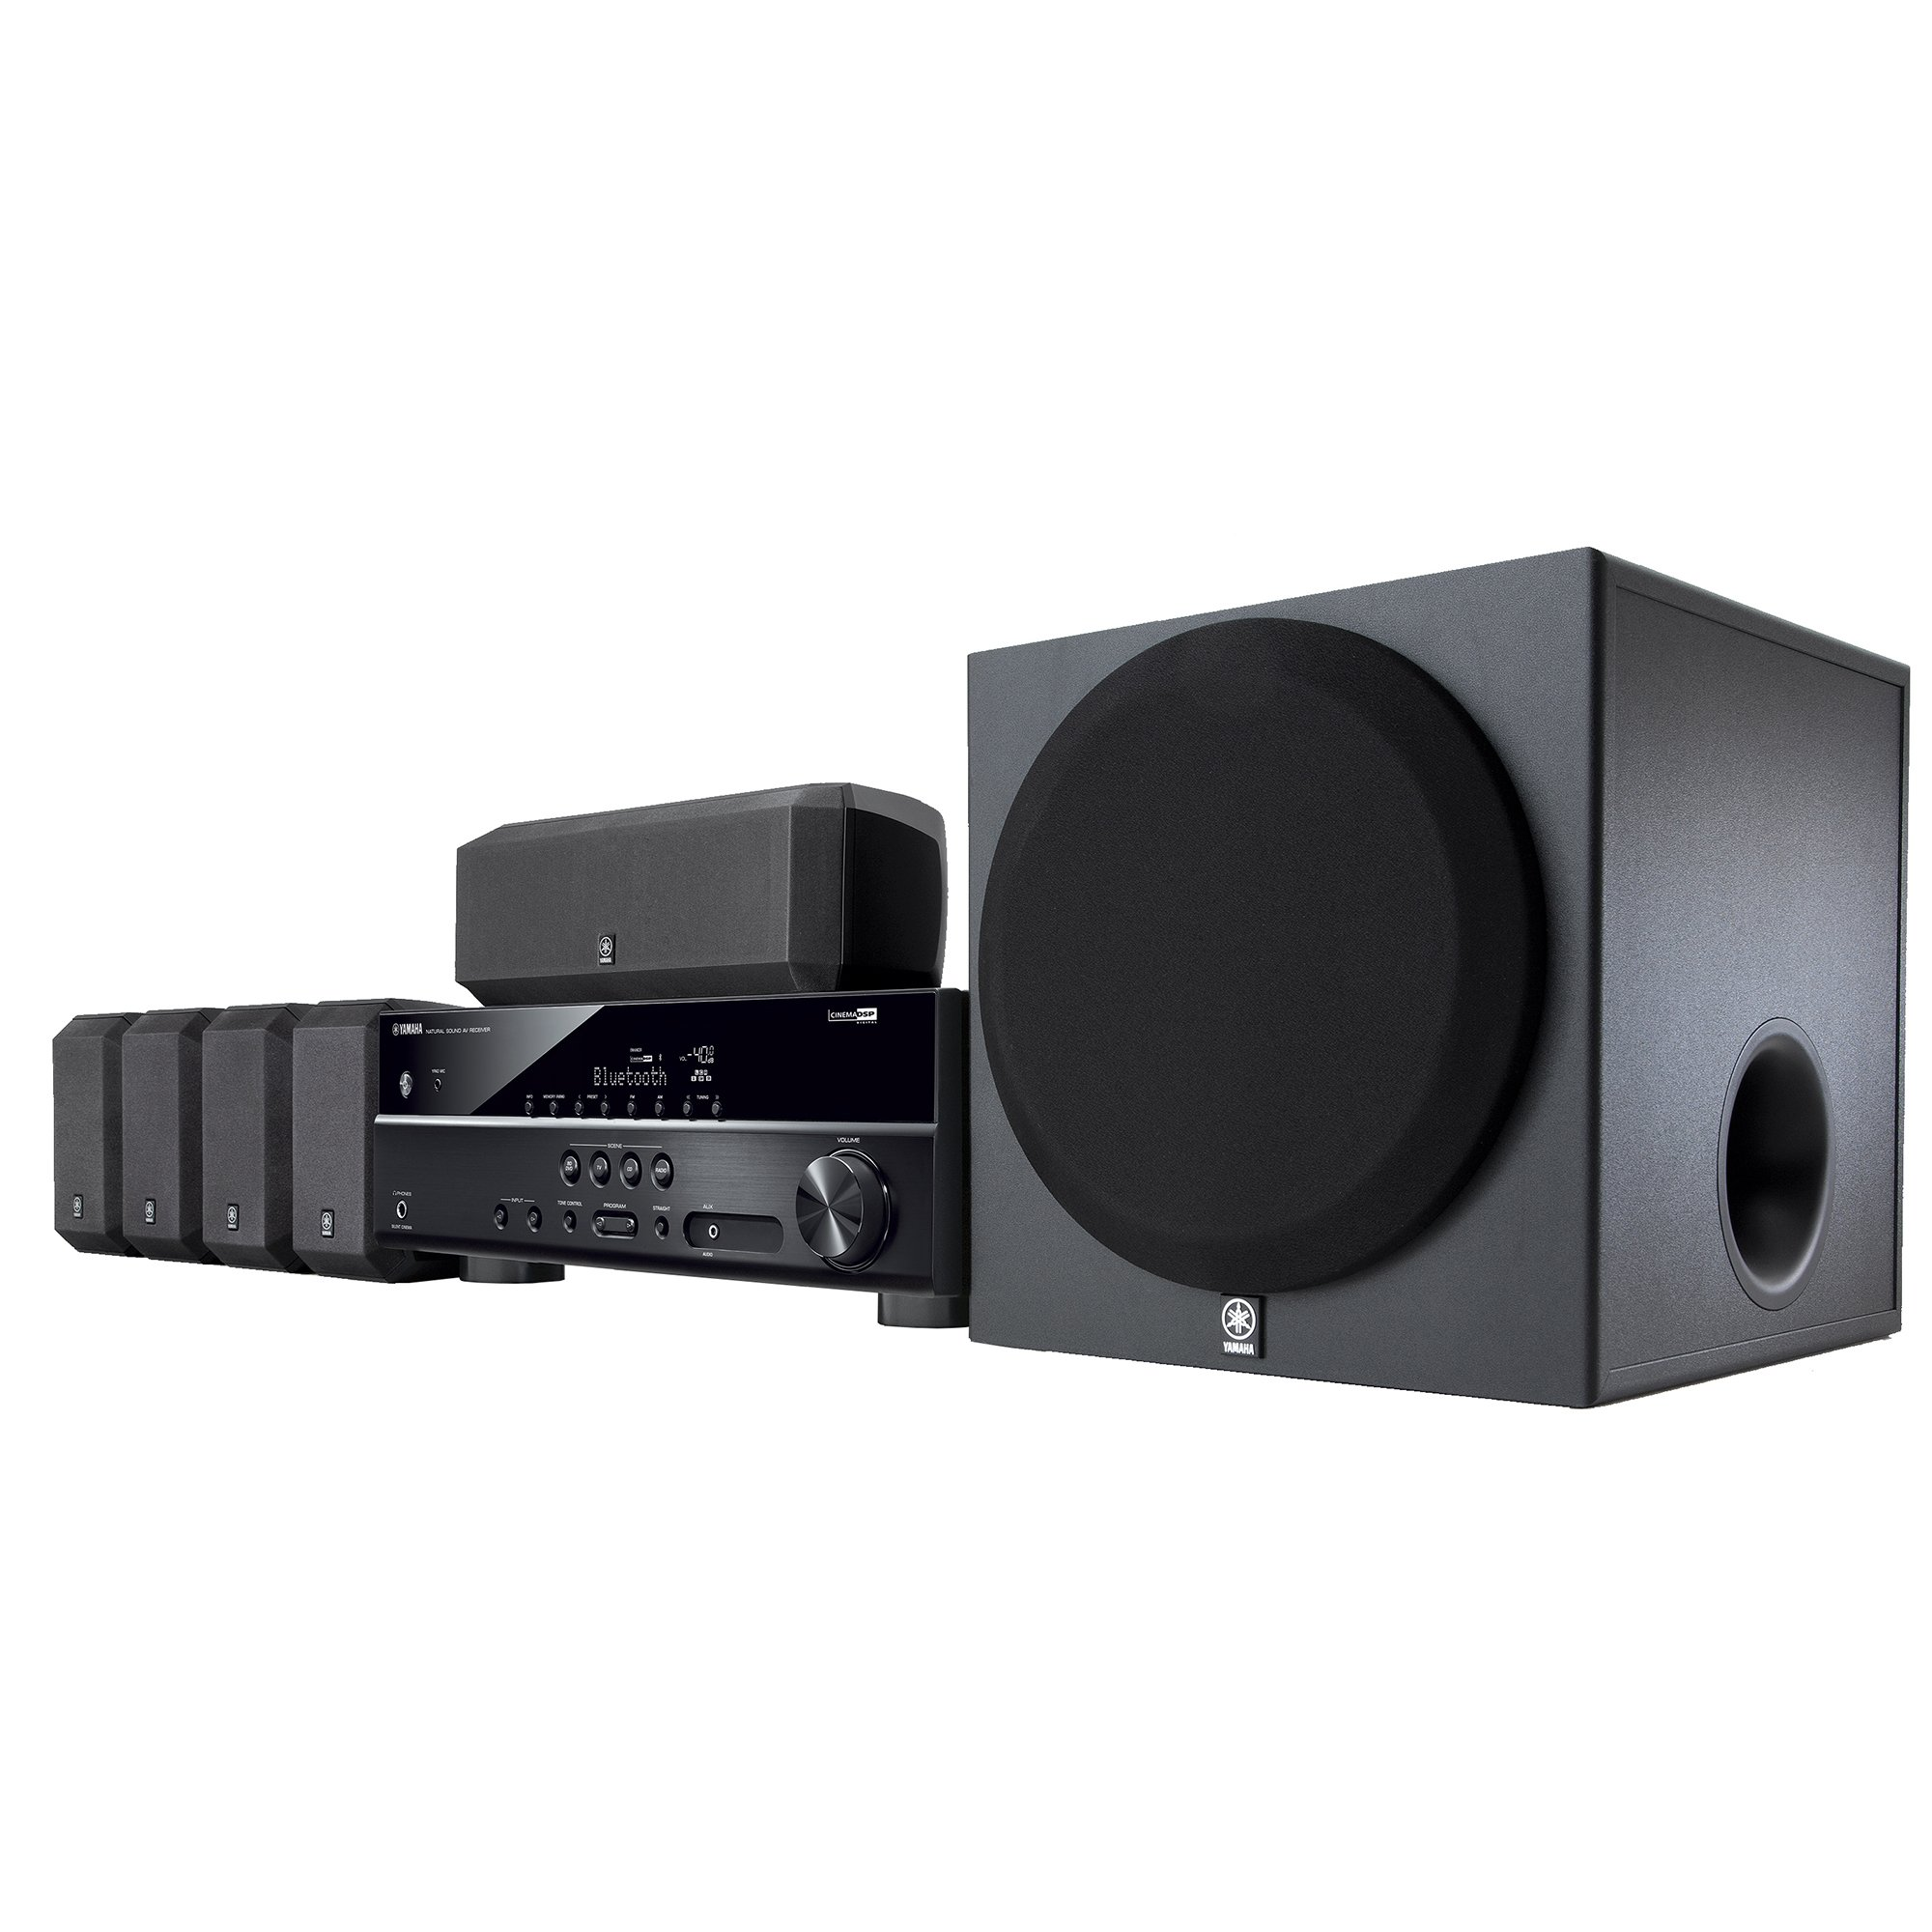 Yamaha YHT-3920UBL 5.1-Channel Home Theater in a Box System with Bluetooth by Yamaha